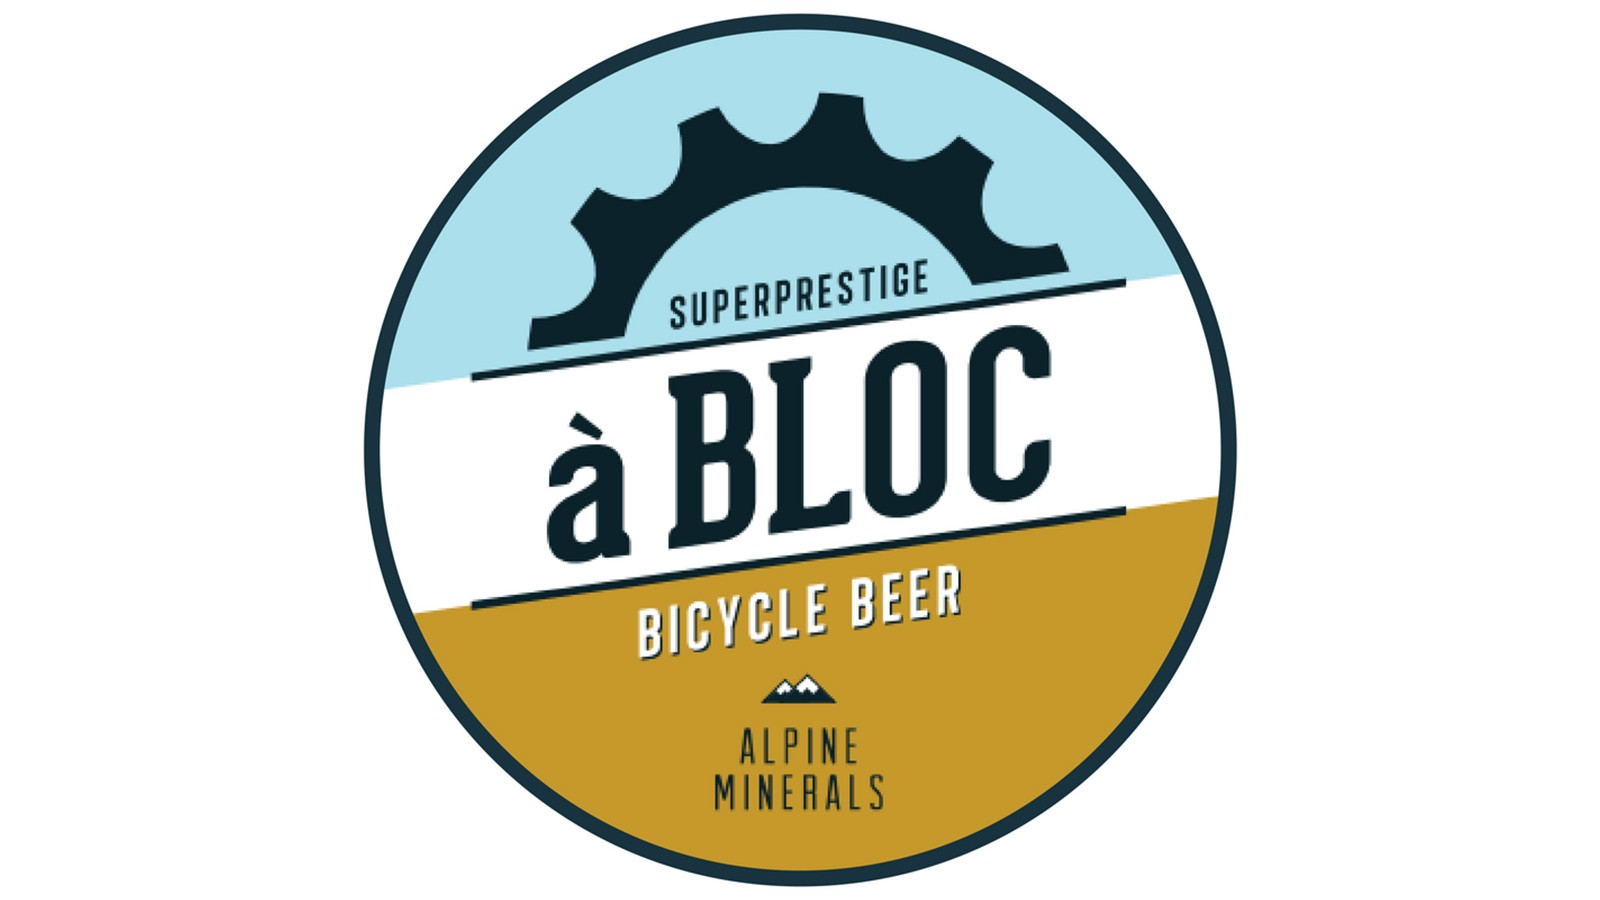 Does beer with 'Alpine minerals' make you recover faster? Or, should the question just be, how does this beer taste?